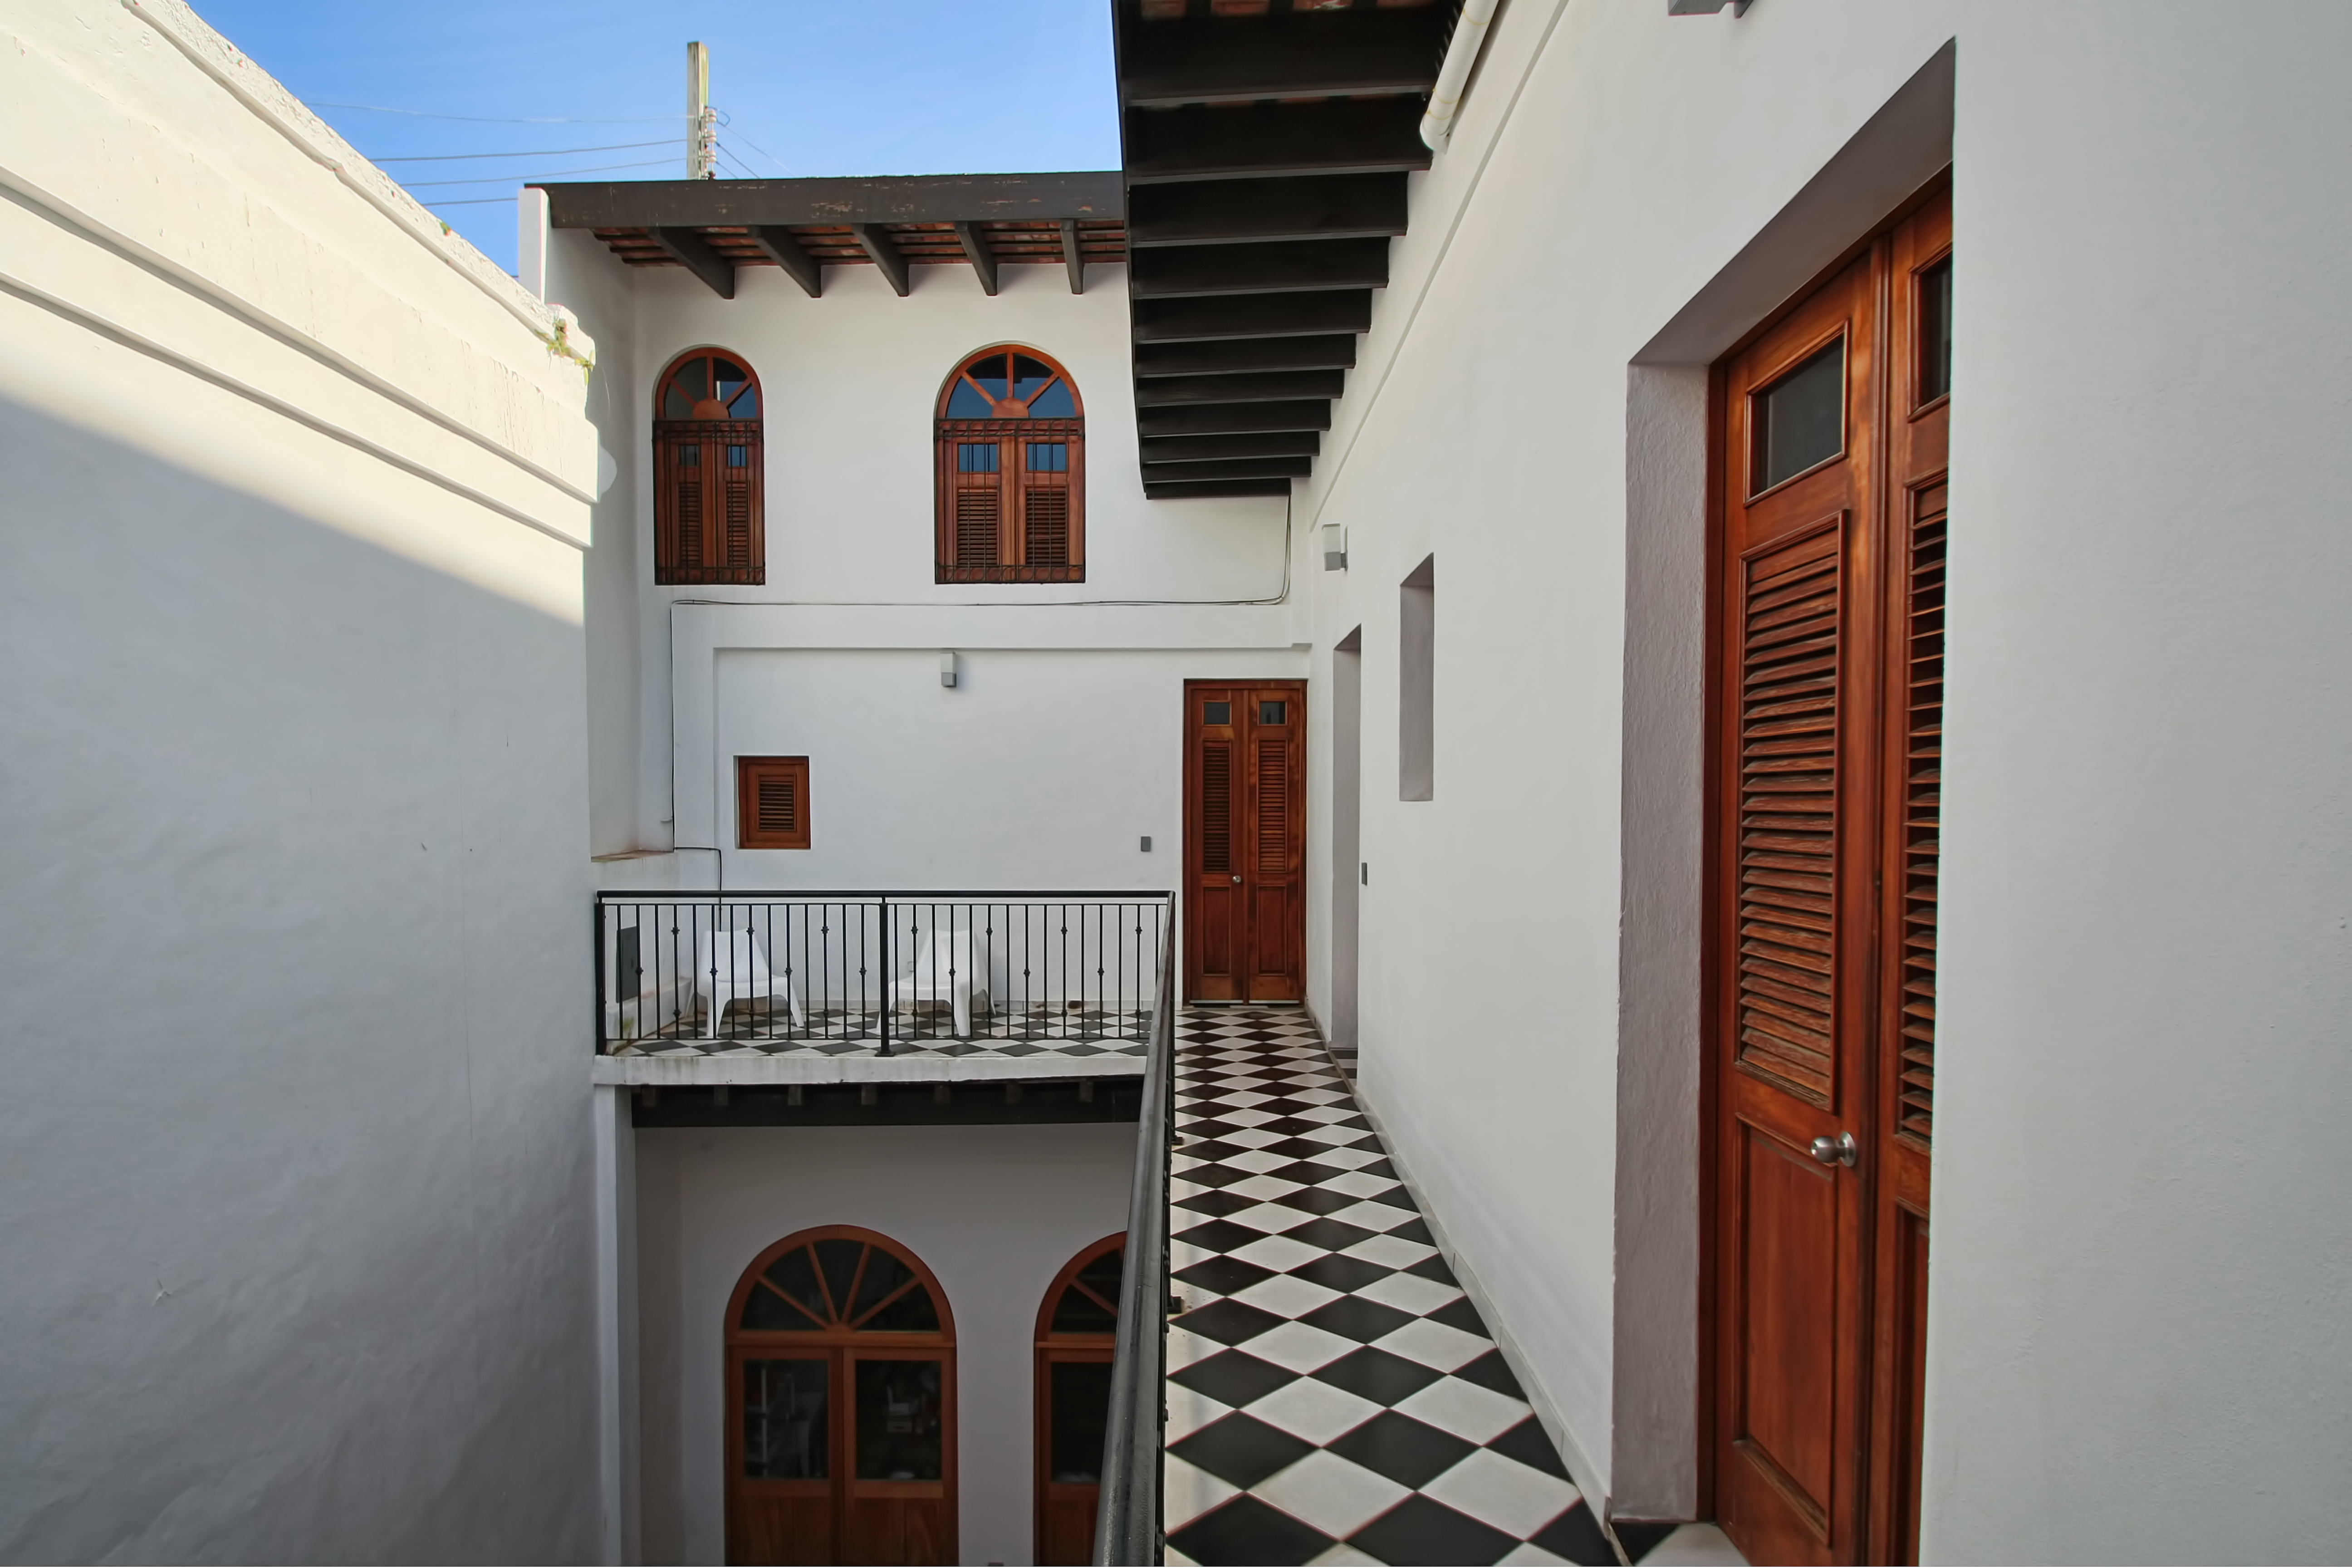 [Sold] 306 Calle Fortaleza › Old San Juan Luxury Real Estate